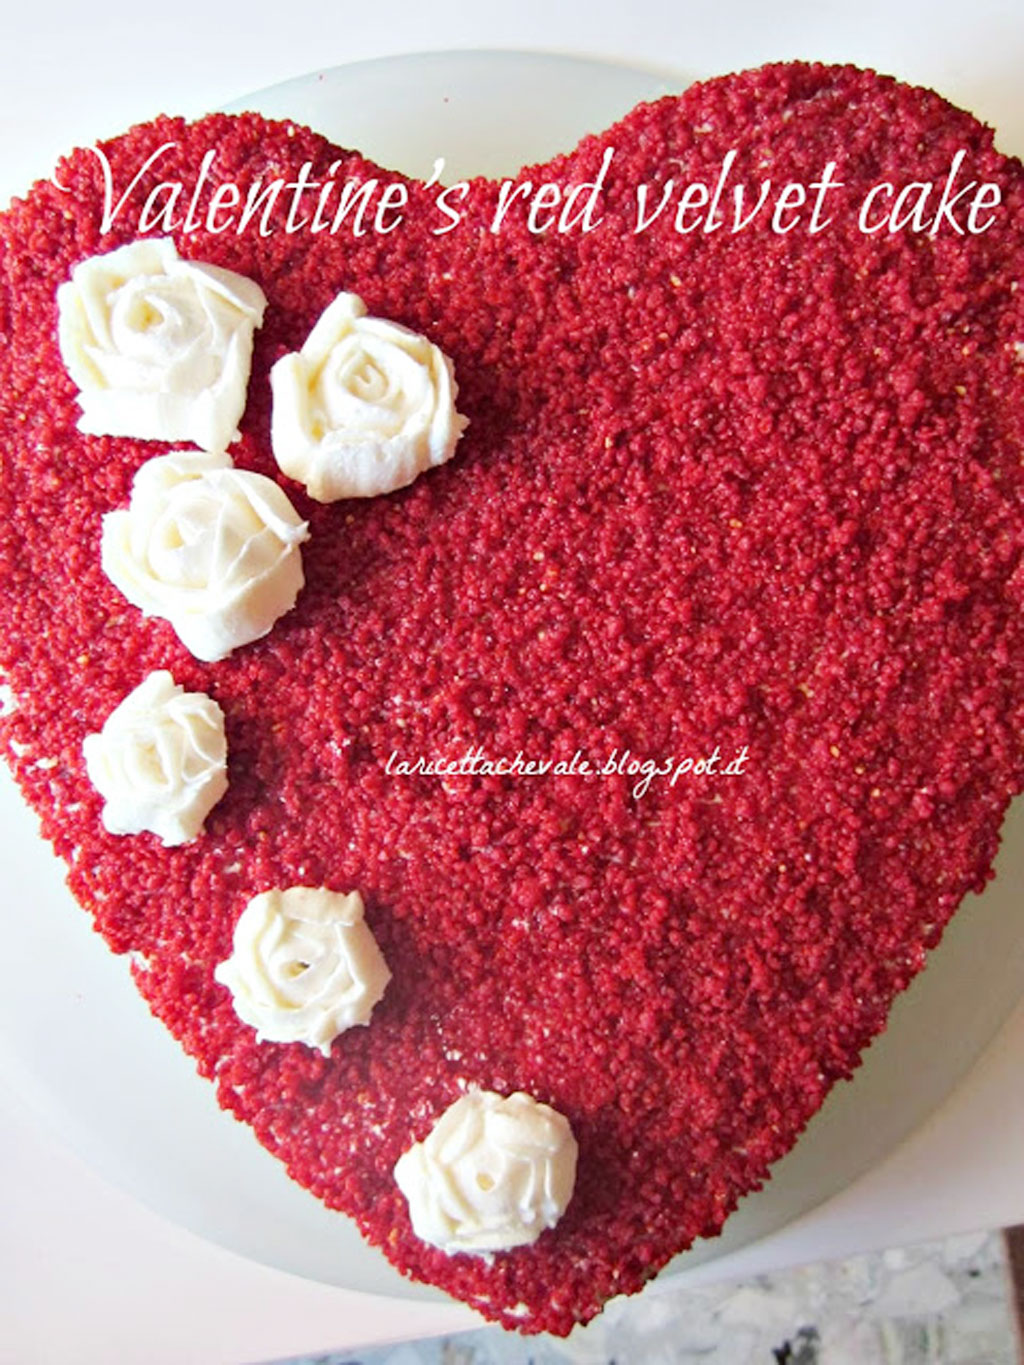 Valentines Red Velvet Cake Idea Picture in Valentine Cakes & Valentines Red Velvet Cake Idea Valentine Cakes - Cake Ideas by ...